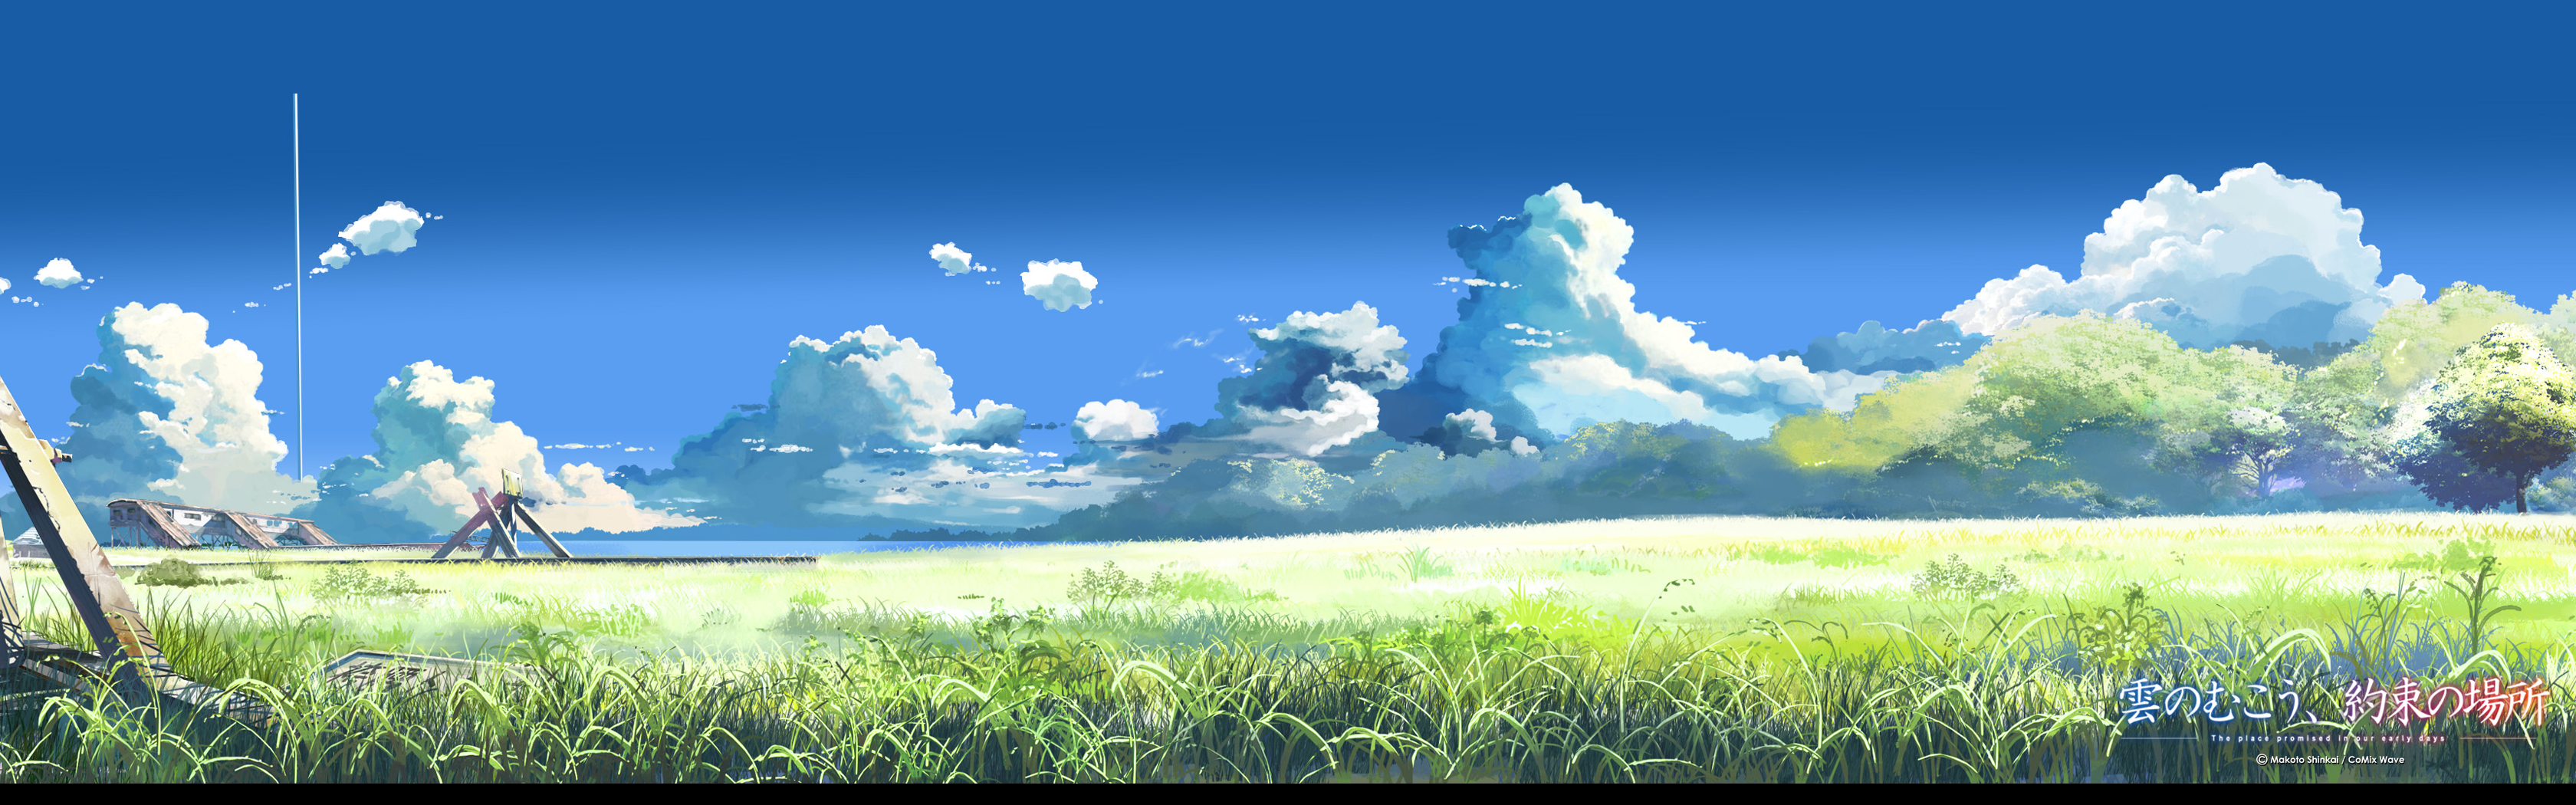 Artist Makoto Shinkai He Is An Animator And This Image Came From One Of His